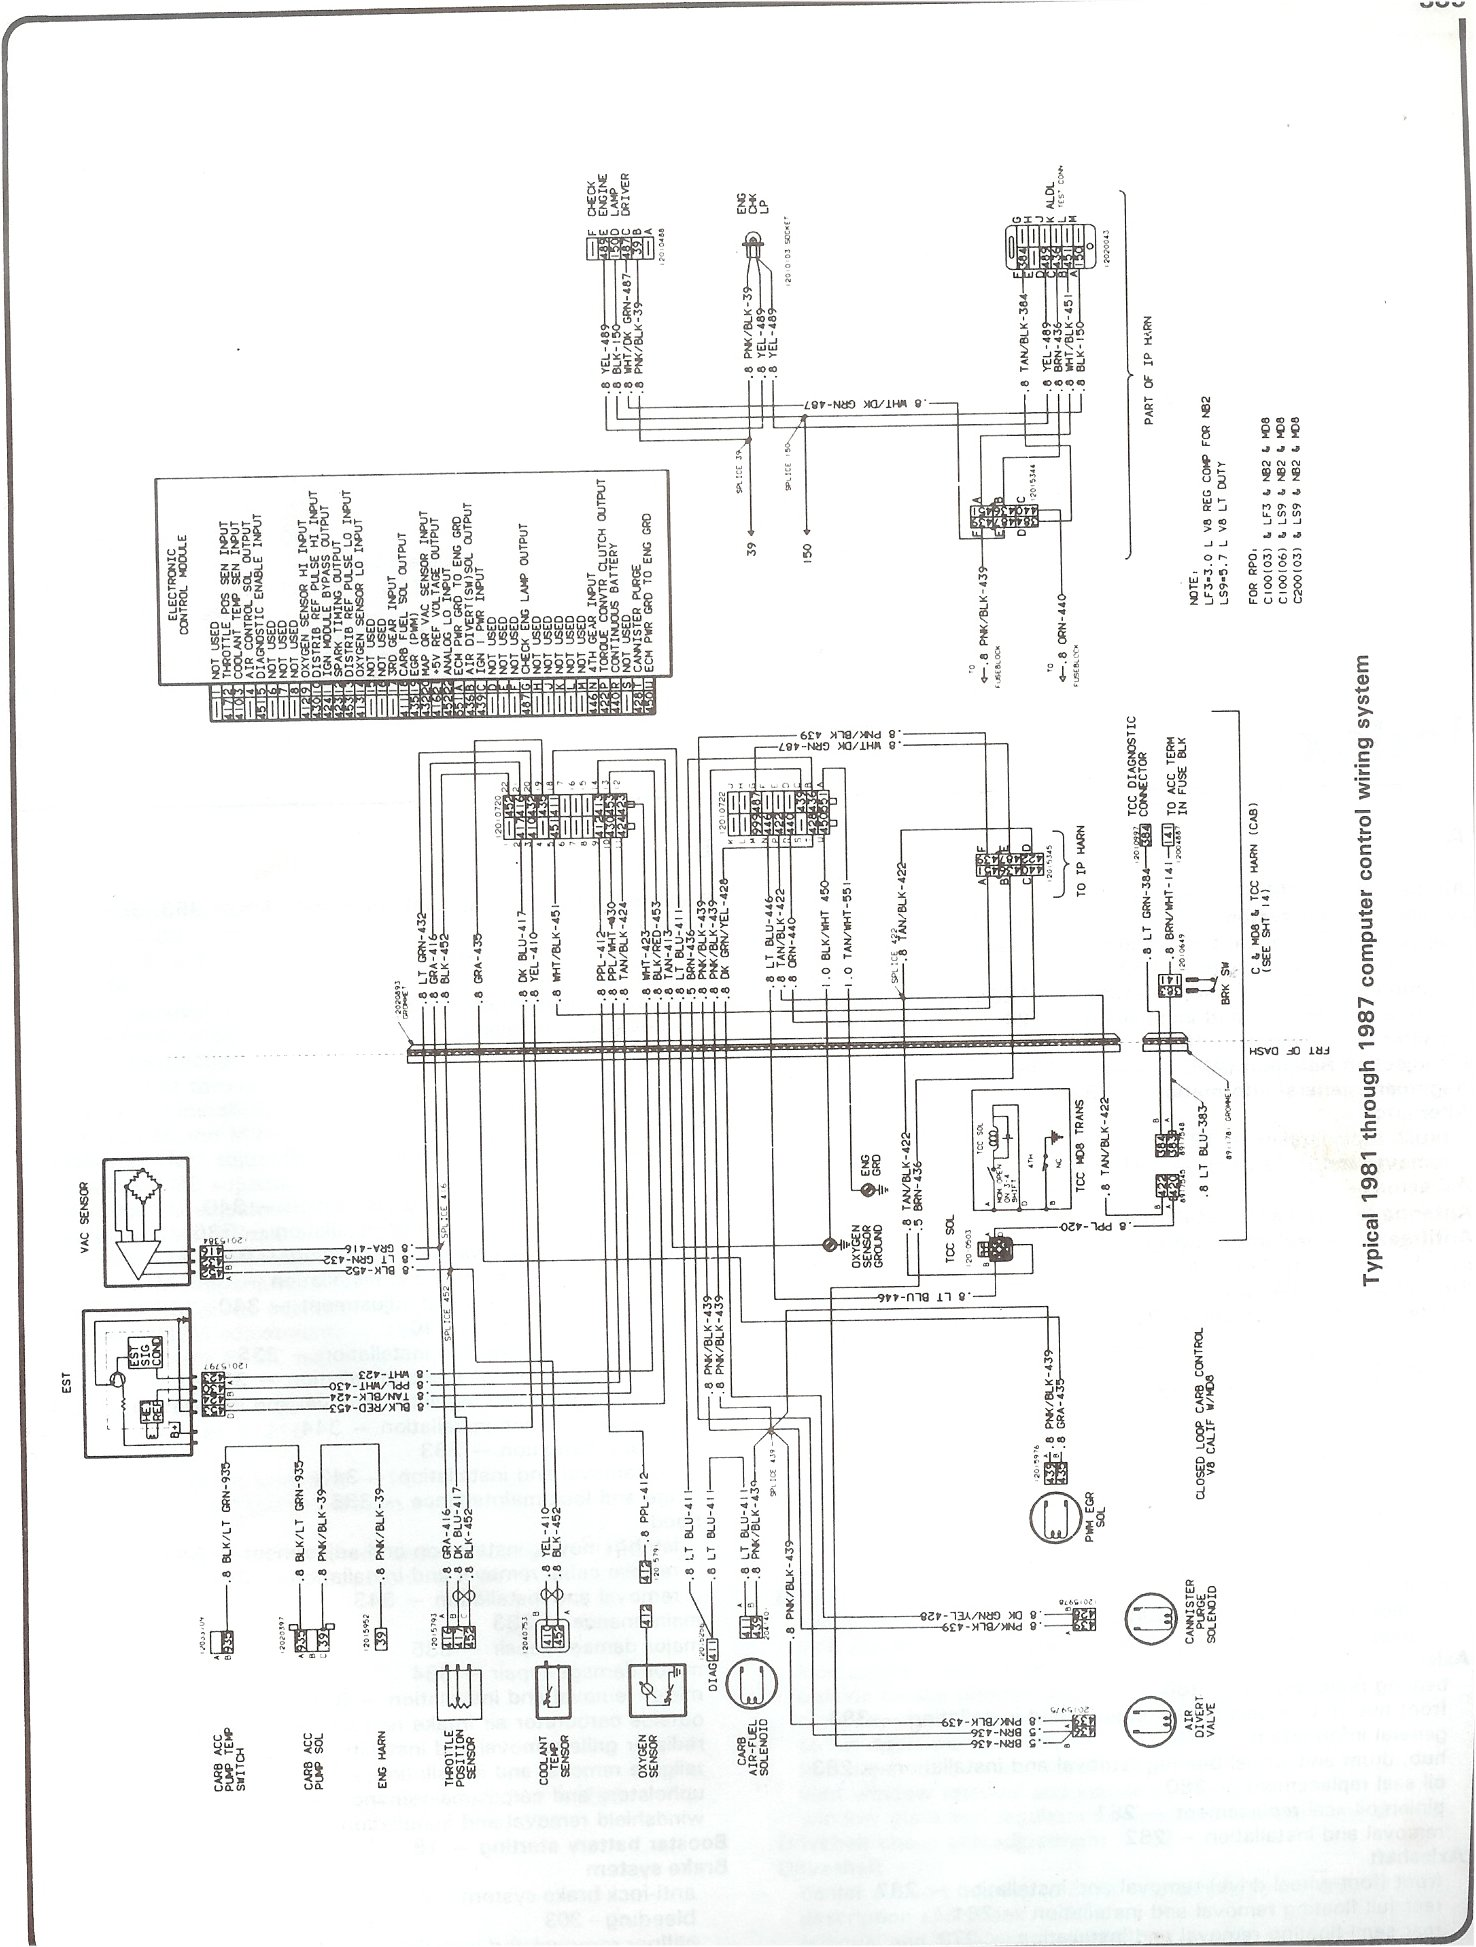 81 87_computer_control_wiring complete 73 87 wiring diagrams s10 wiring harness diagram at bayanpartner.co